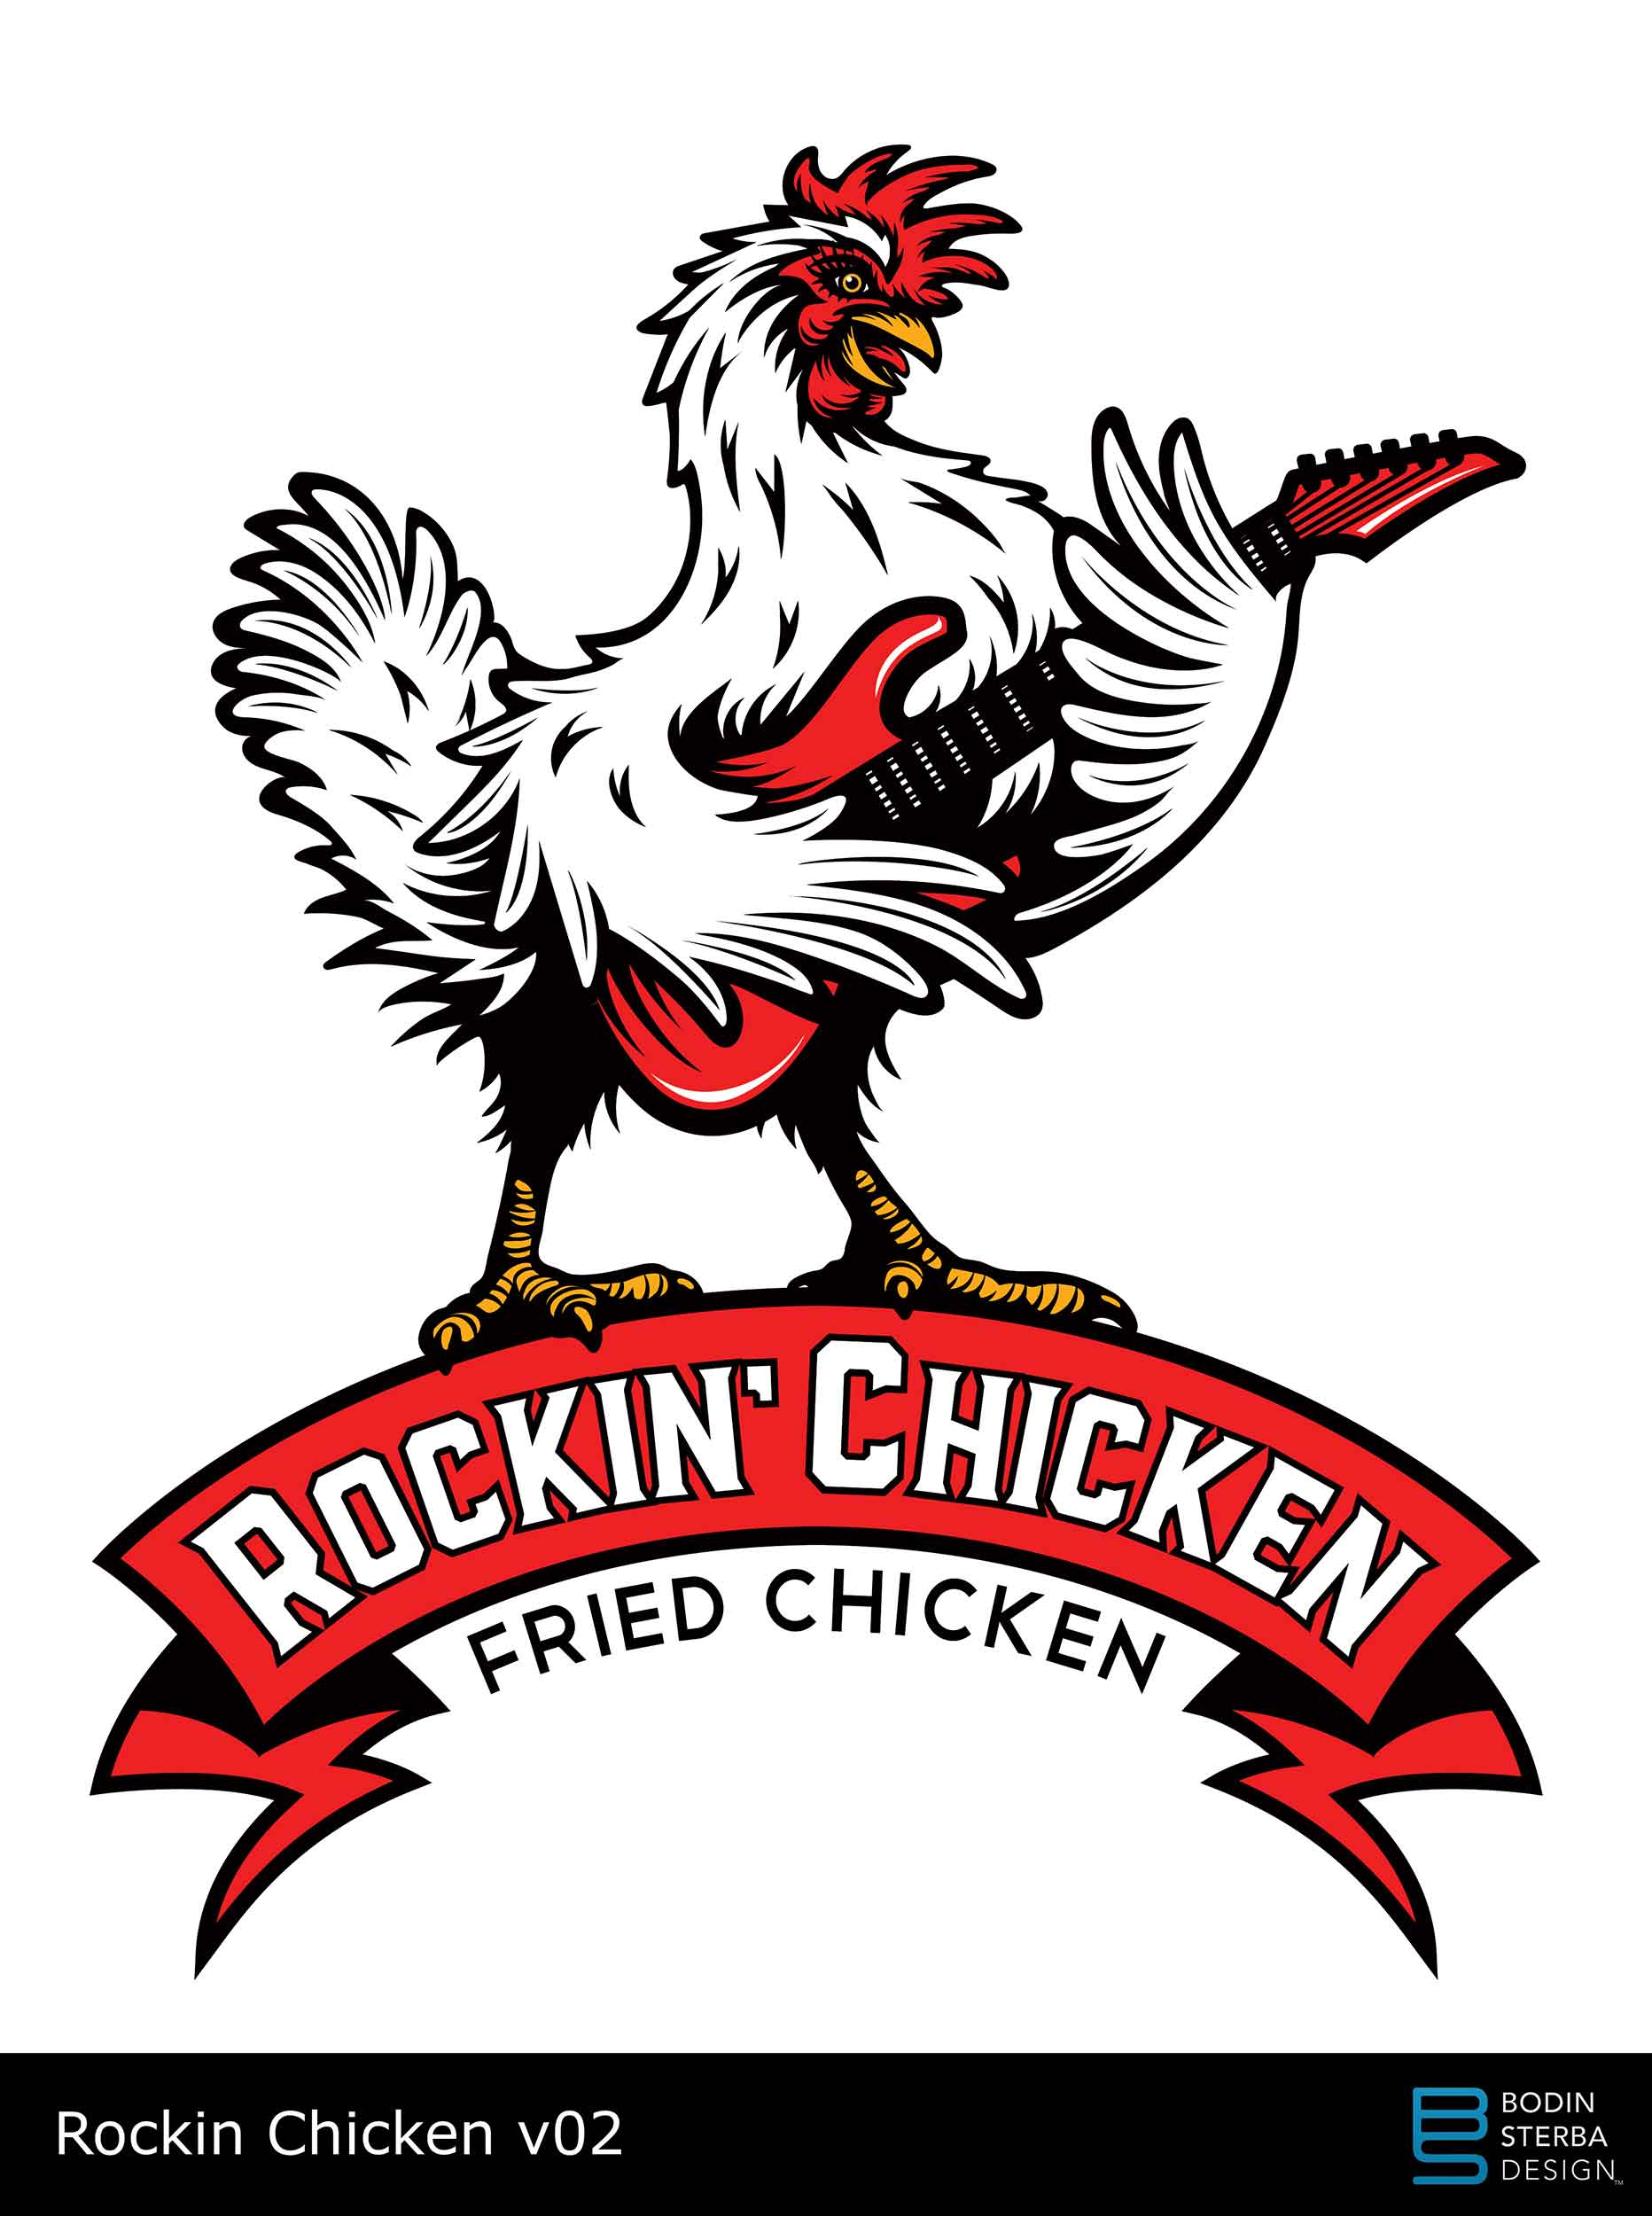 Rockin' Chicken logo v02 pitch